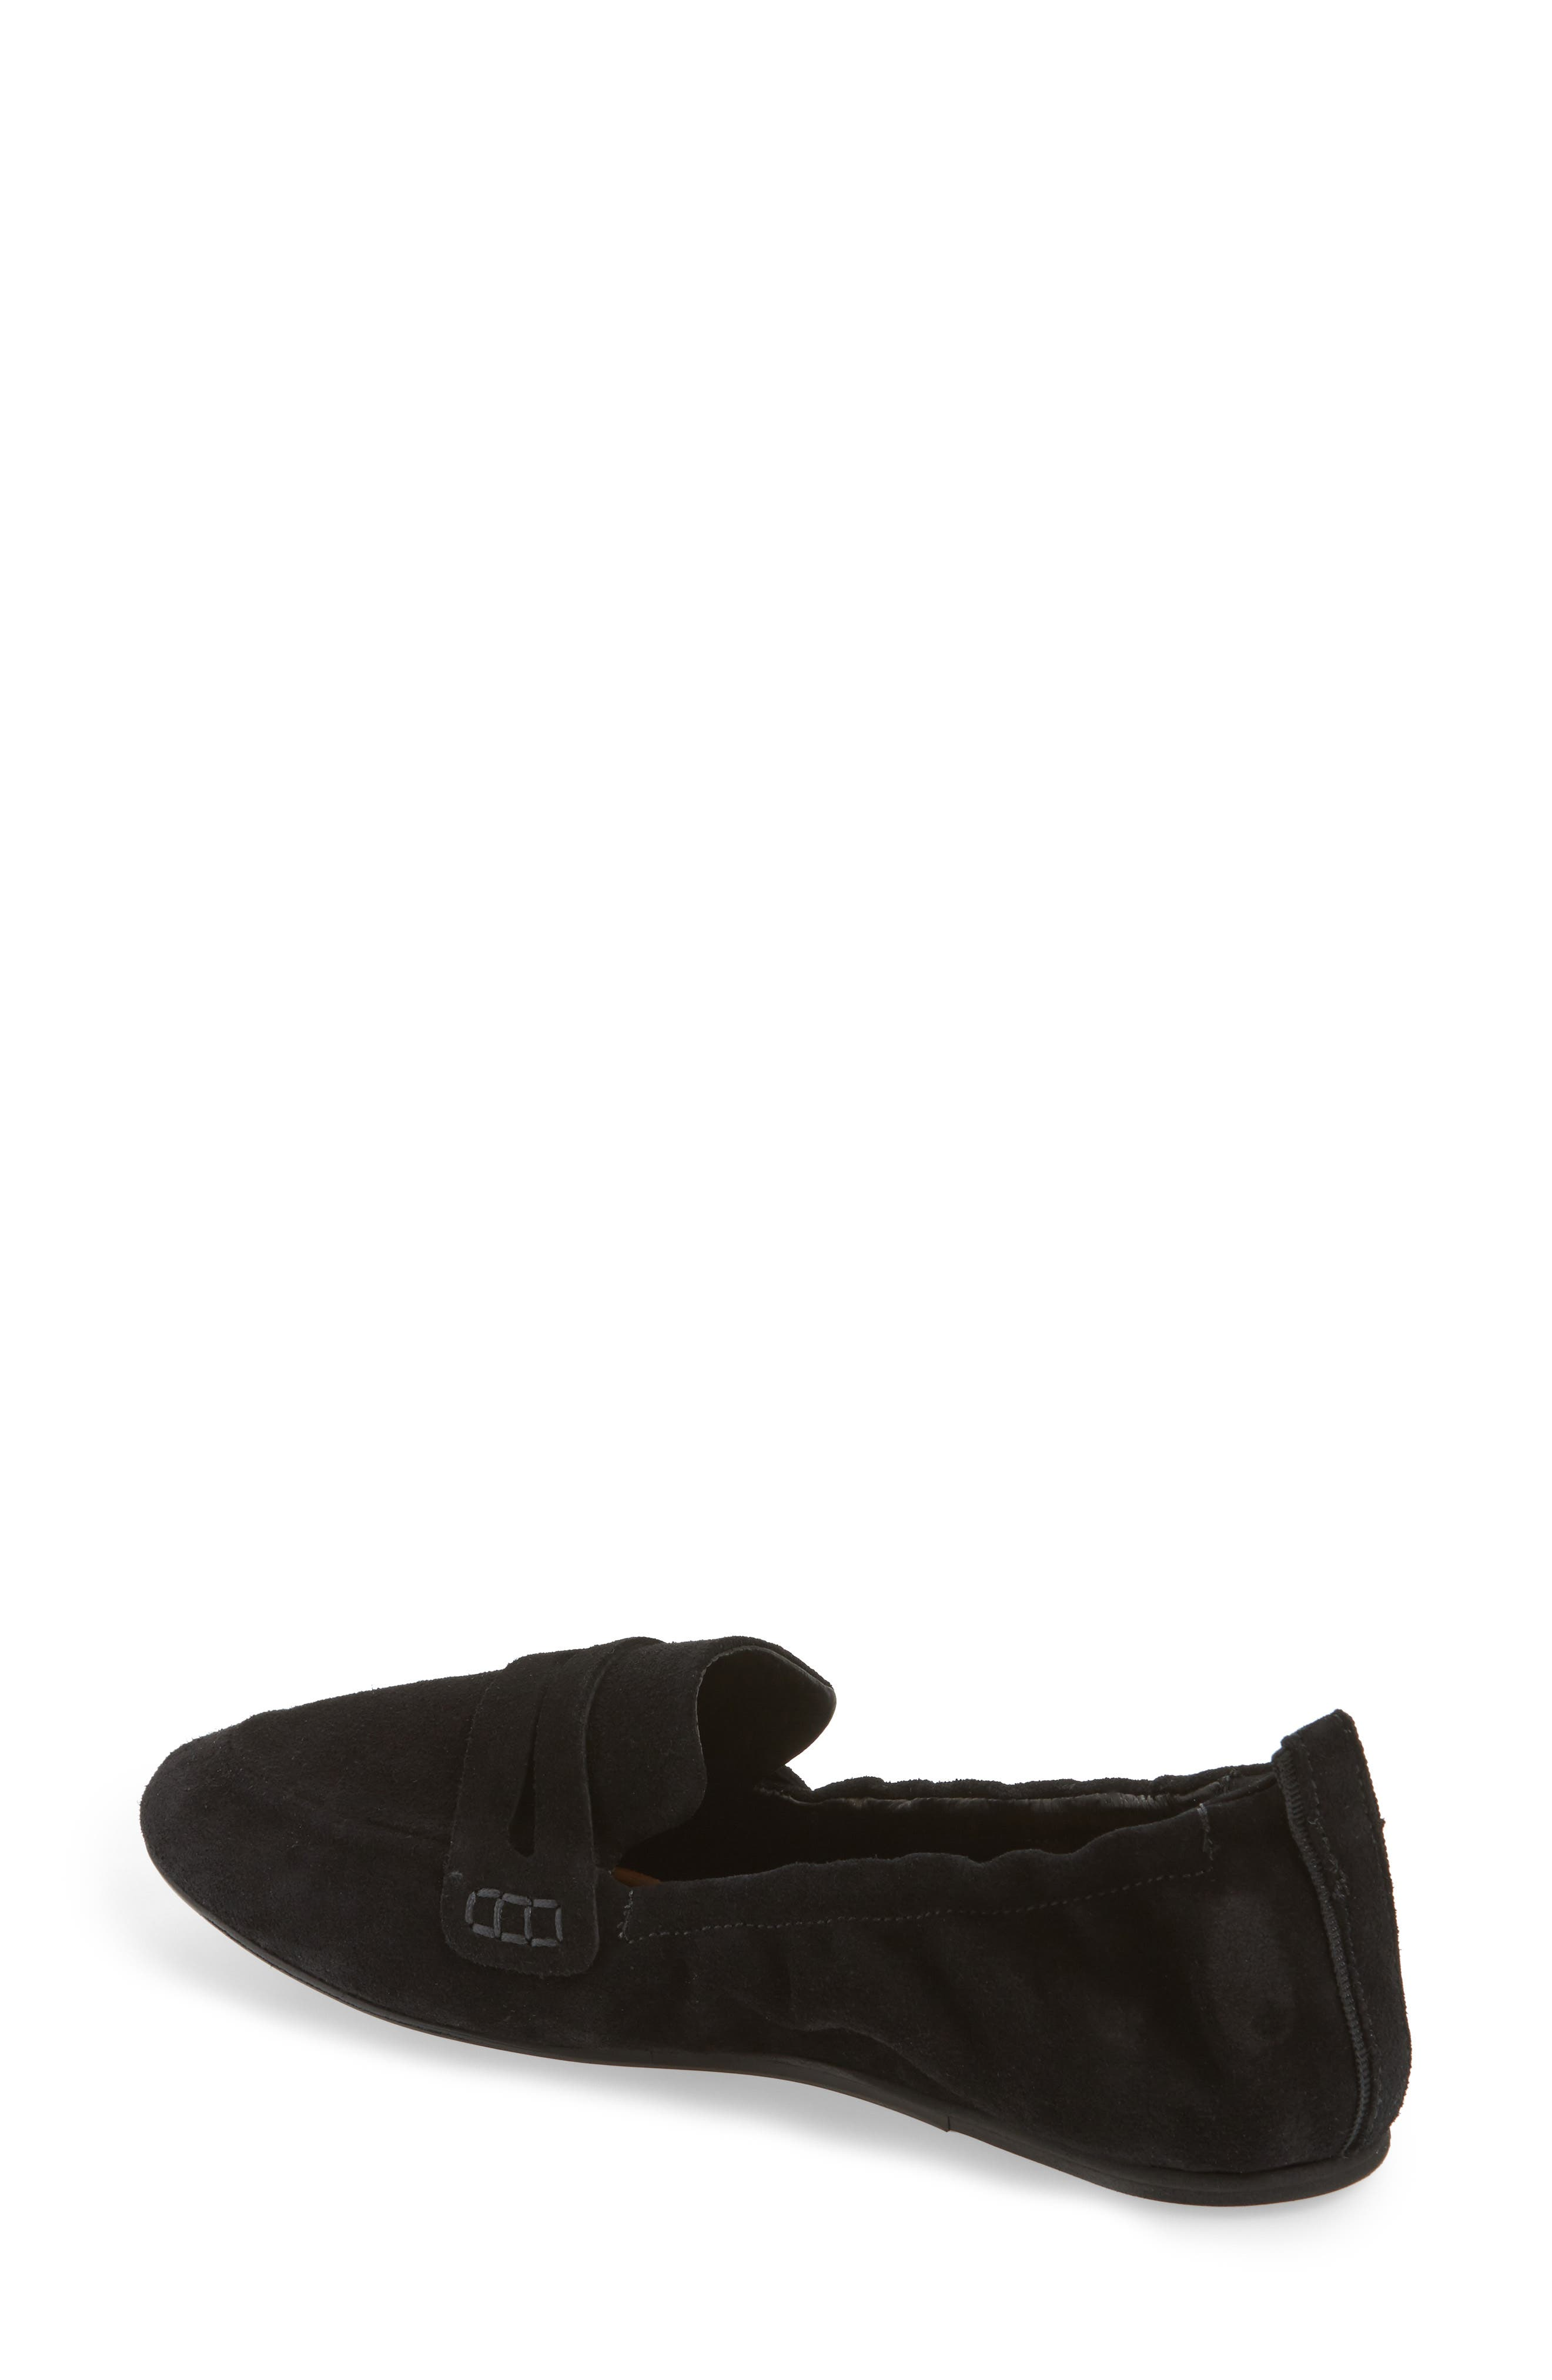 Milly Elastic Loafer Flat,                             Alternate thumbnail 2, color,                             001